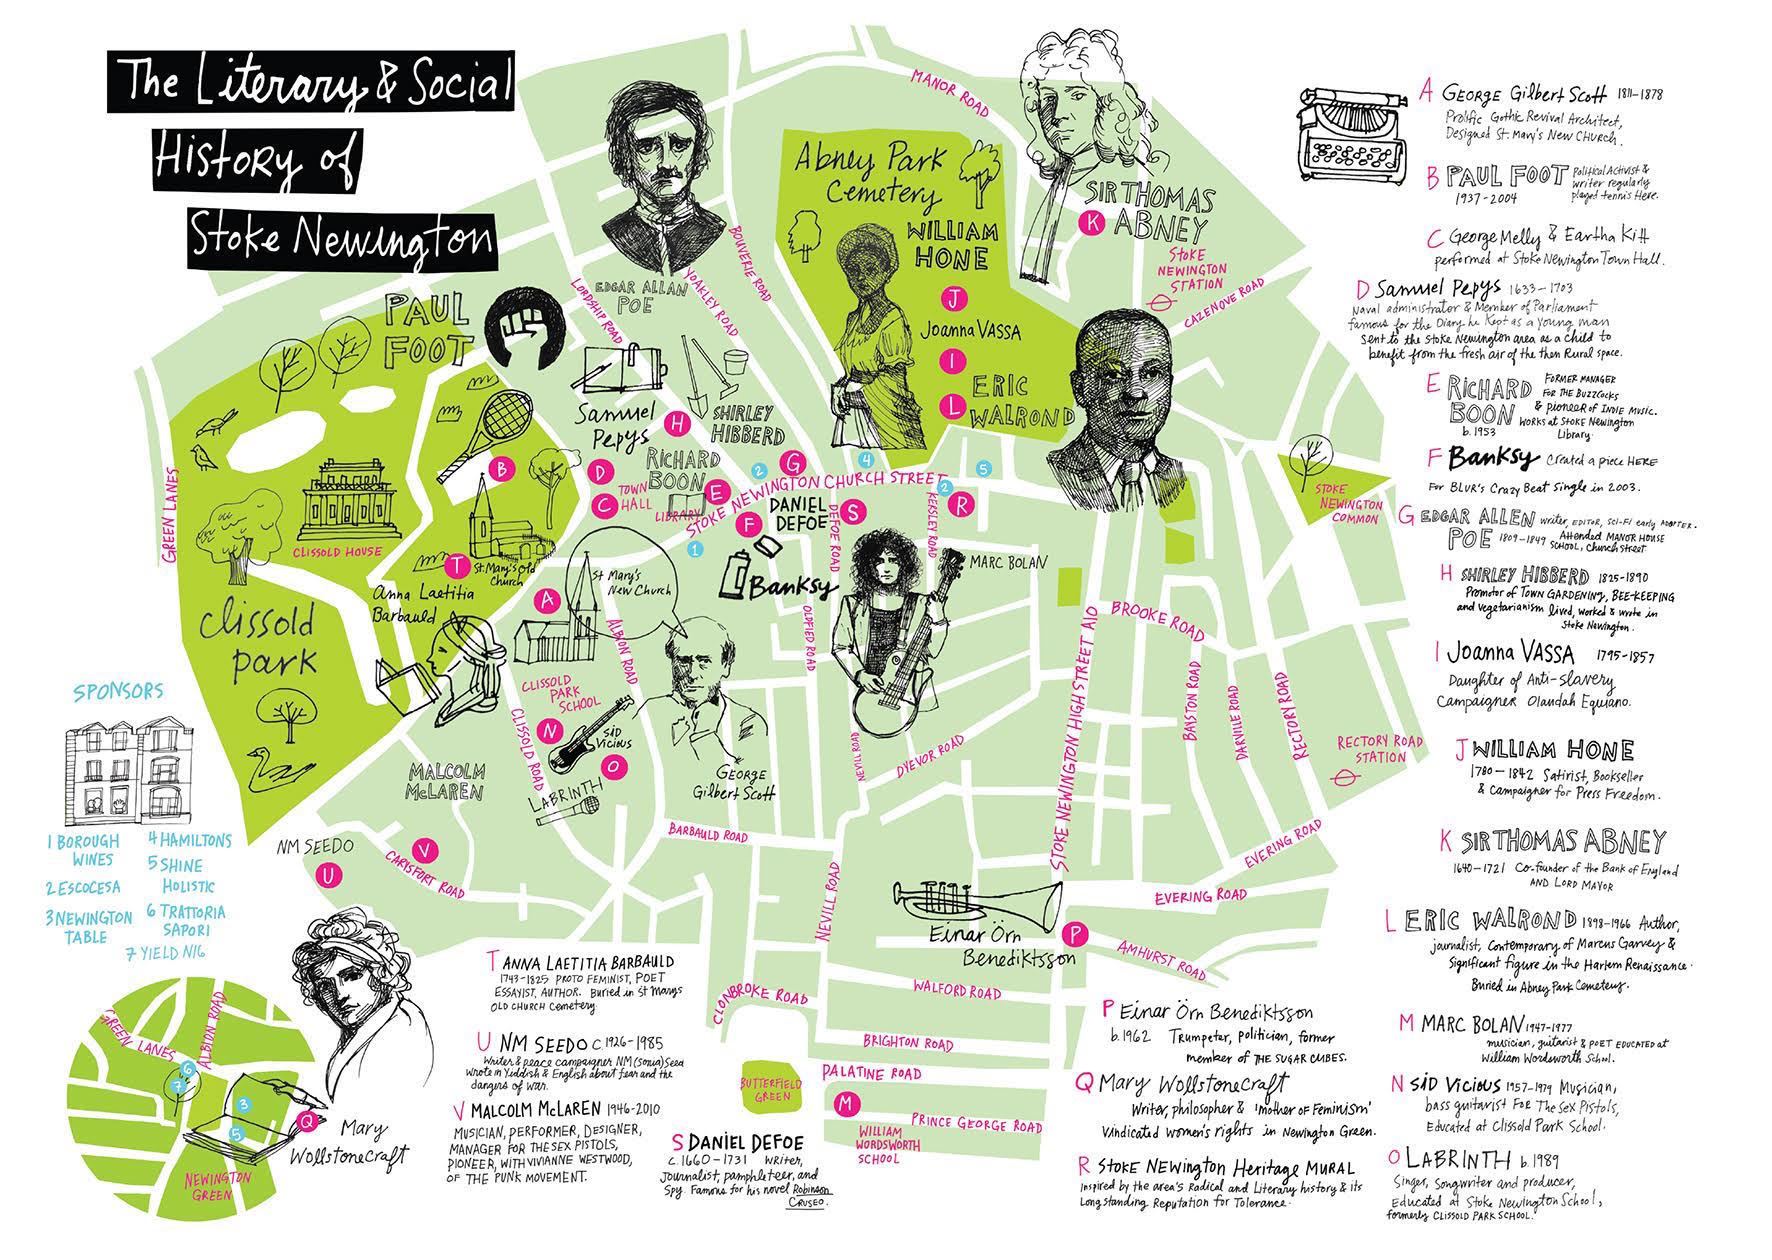 Pepys And Banksy Feature In New Stoke Newington Map | Londonist